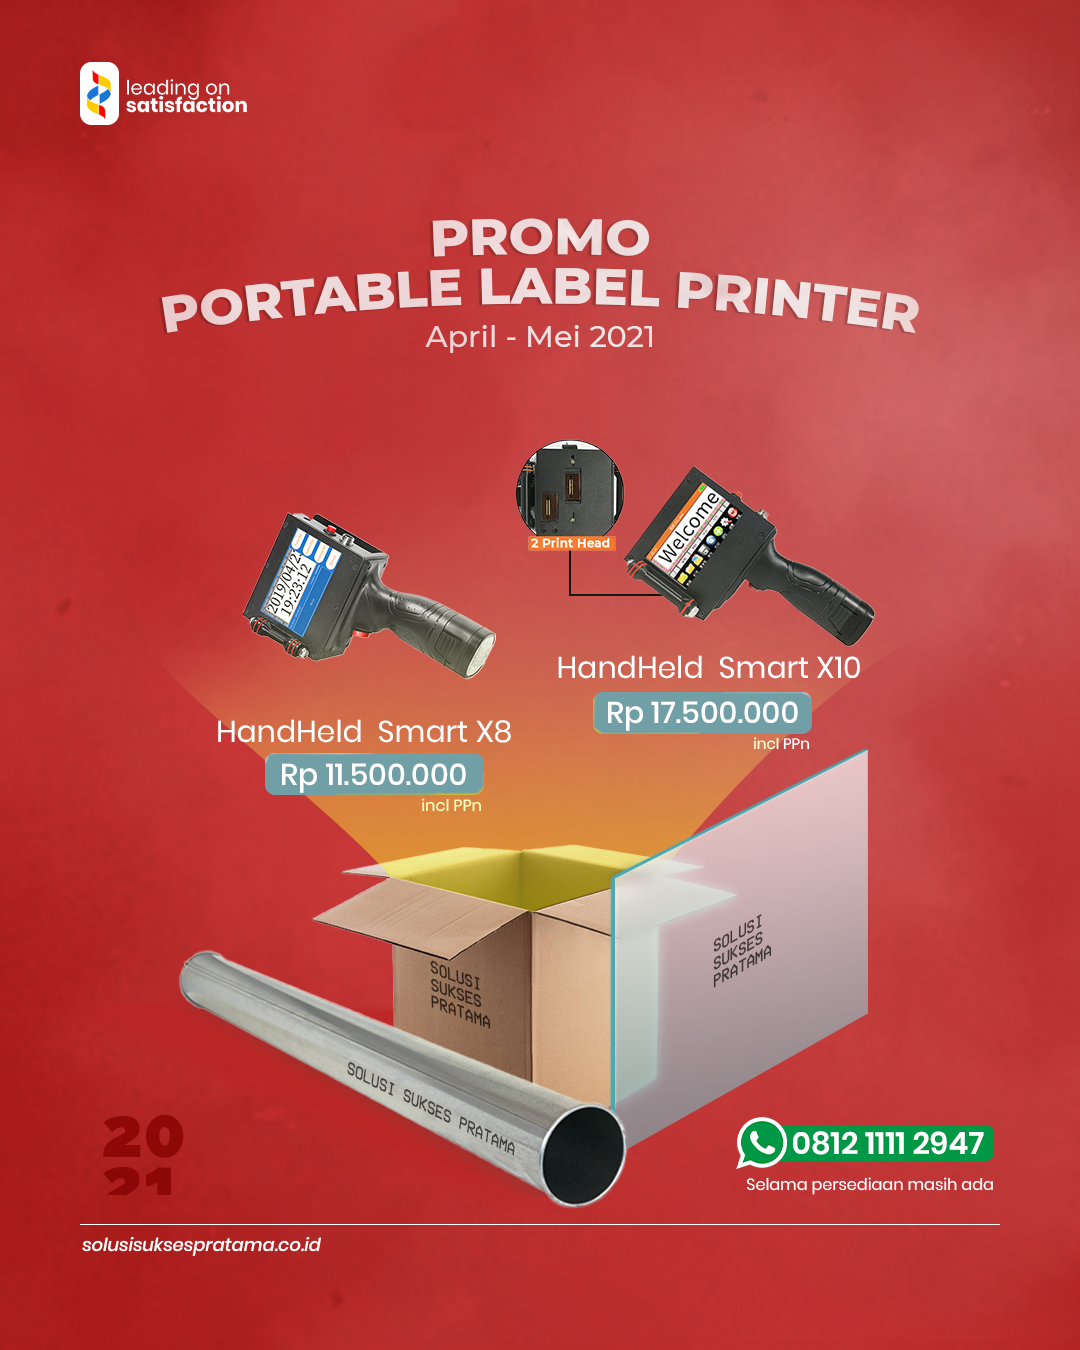 Promo Portable Label Printer